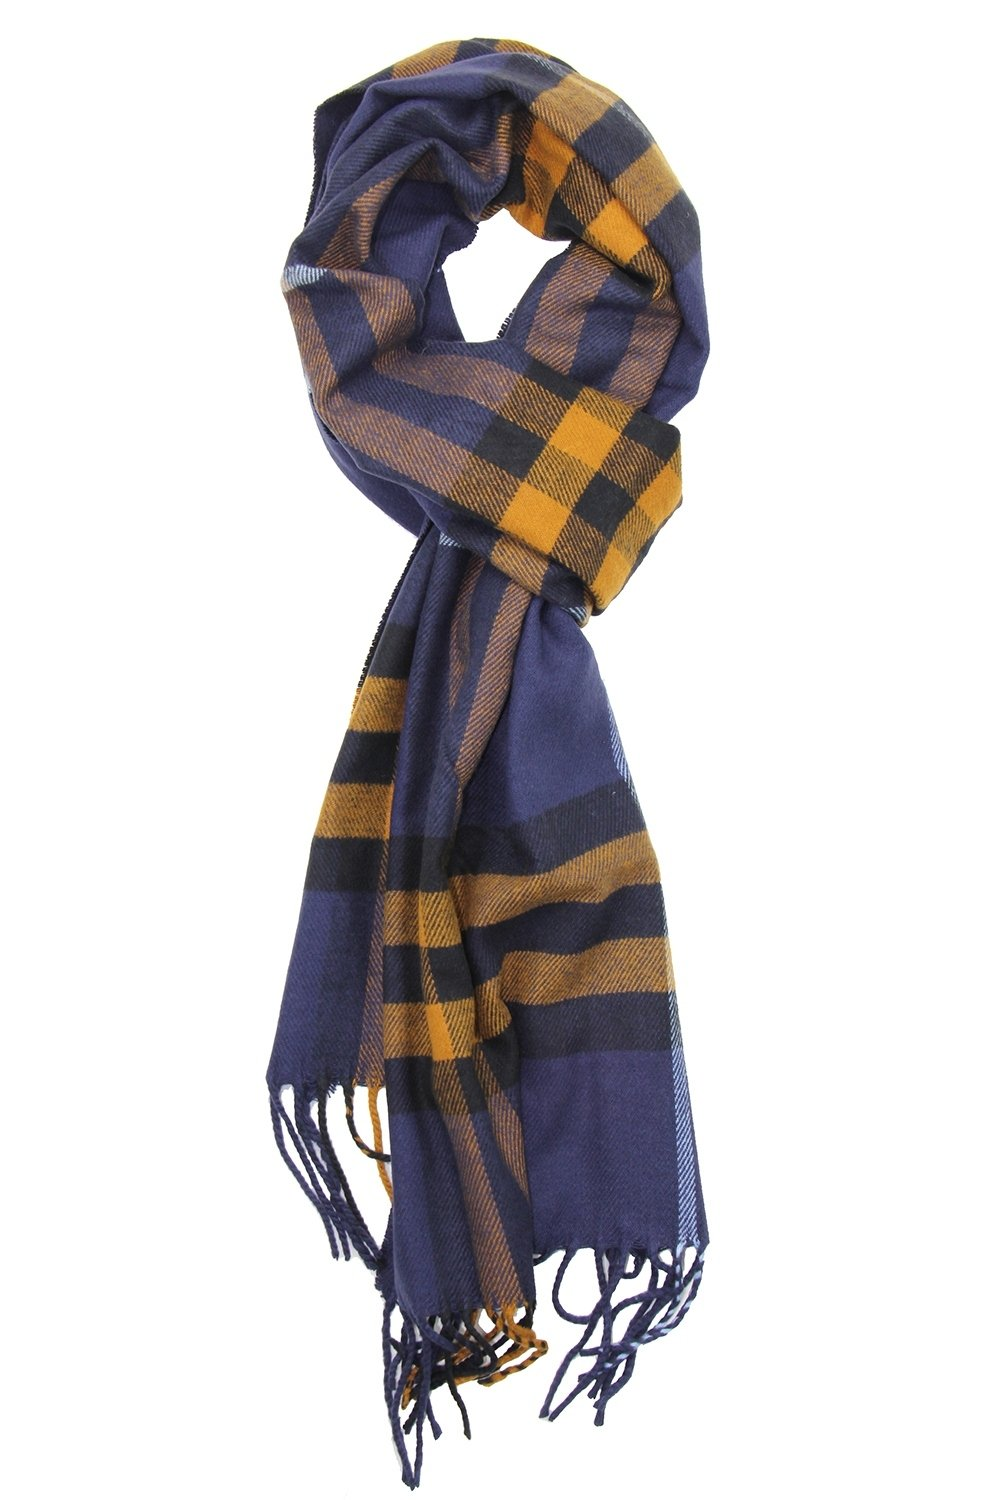 Achillea Classic Cashmere Feel Tartan Plaid Checked Winter Warm Scarf Unisex (Navy Yellow Plaid)